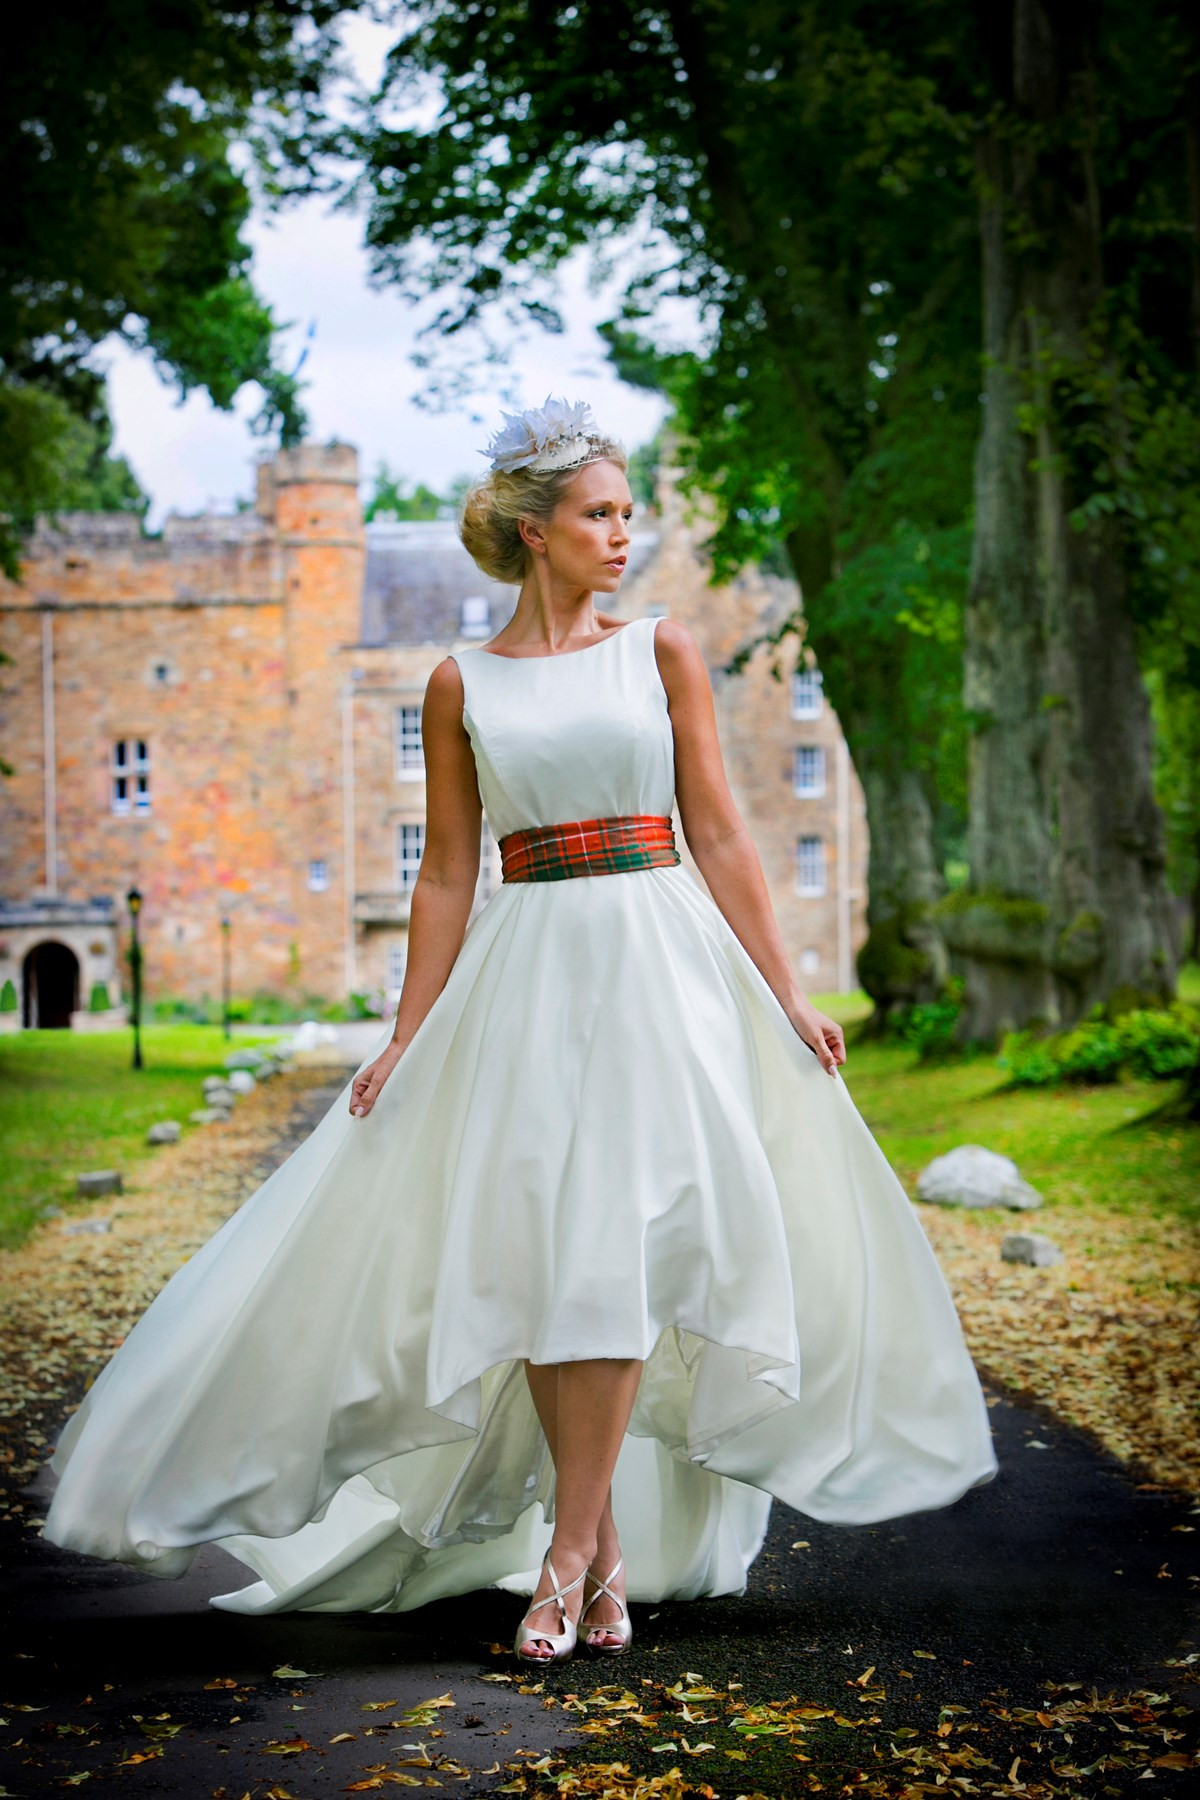 Summer Wedding Outfits Can Be Completely Flexible If You Love Your Legs Why Not Show Them Off With A Shorter Dress